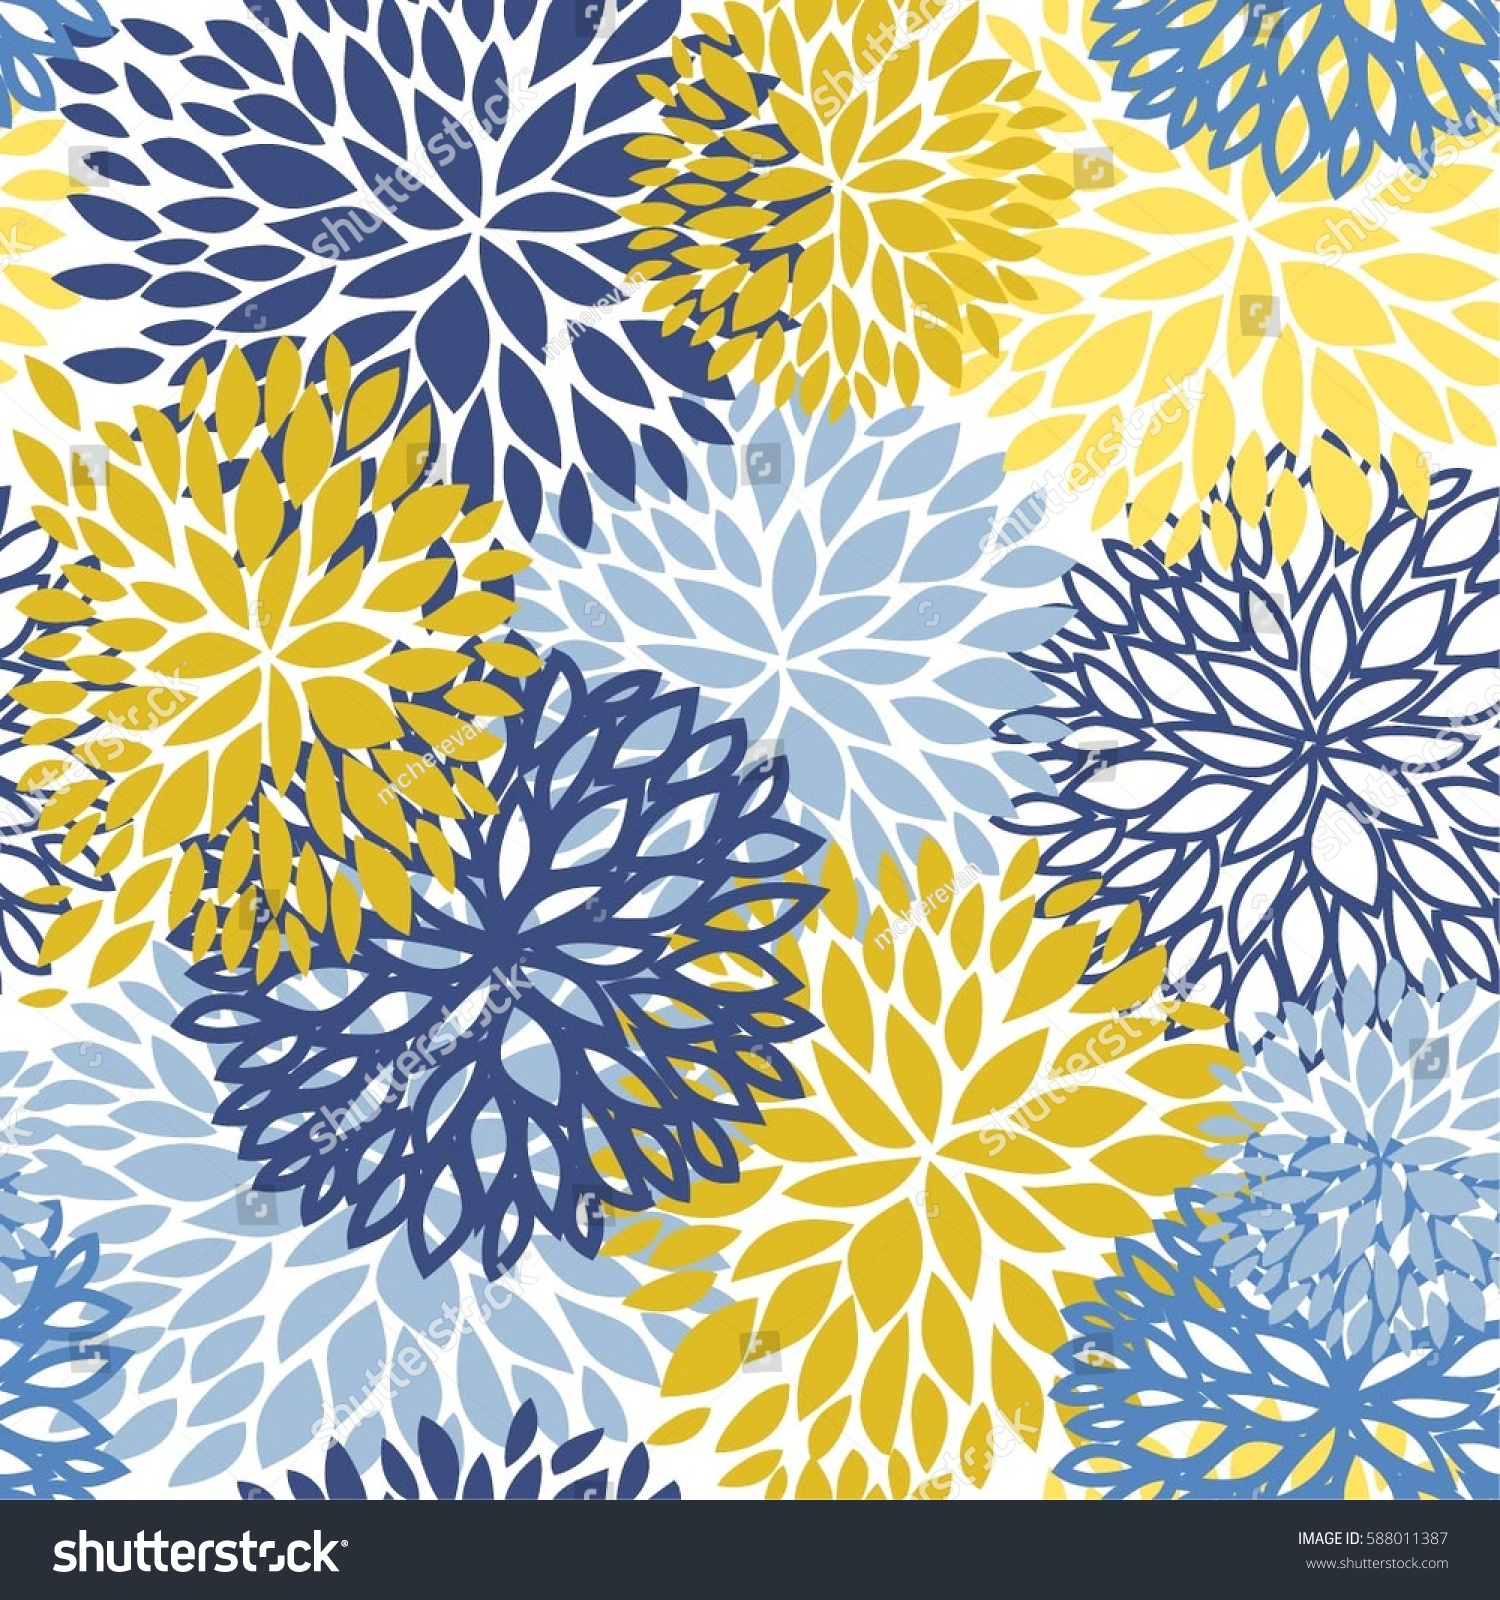 Spring Floral Seamless Pattern Blue Yellow Royalty Free Stock Image